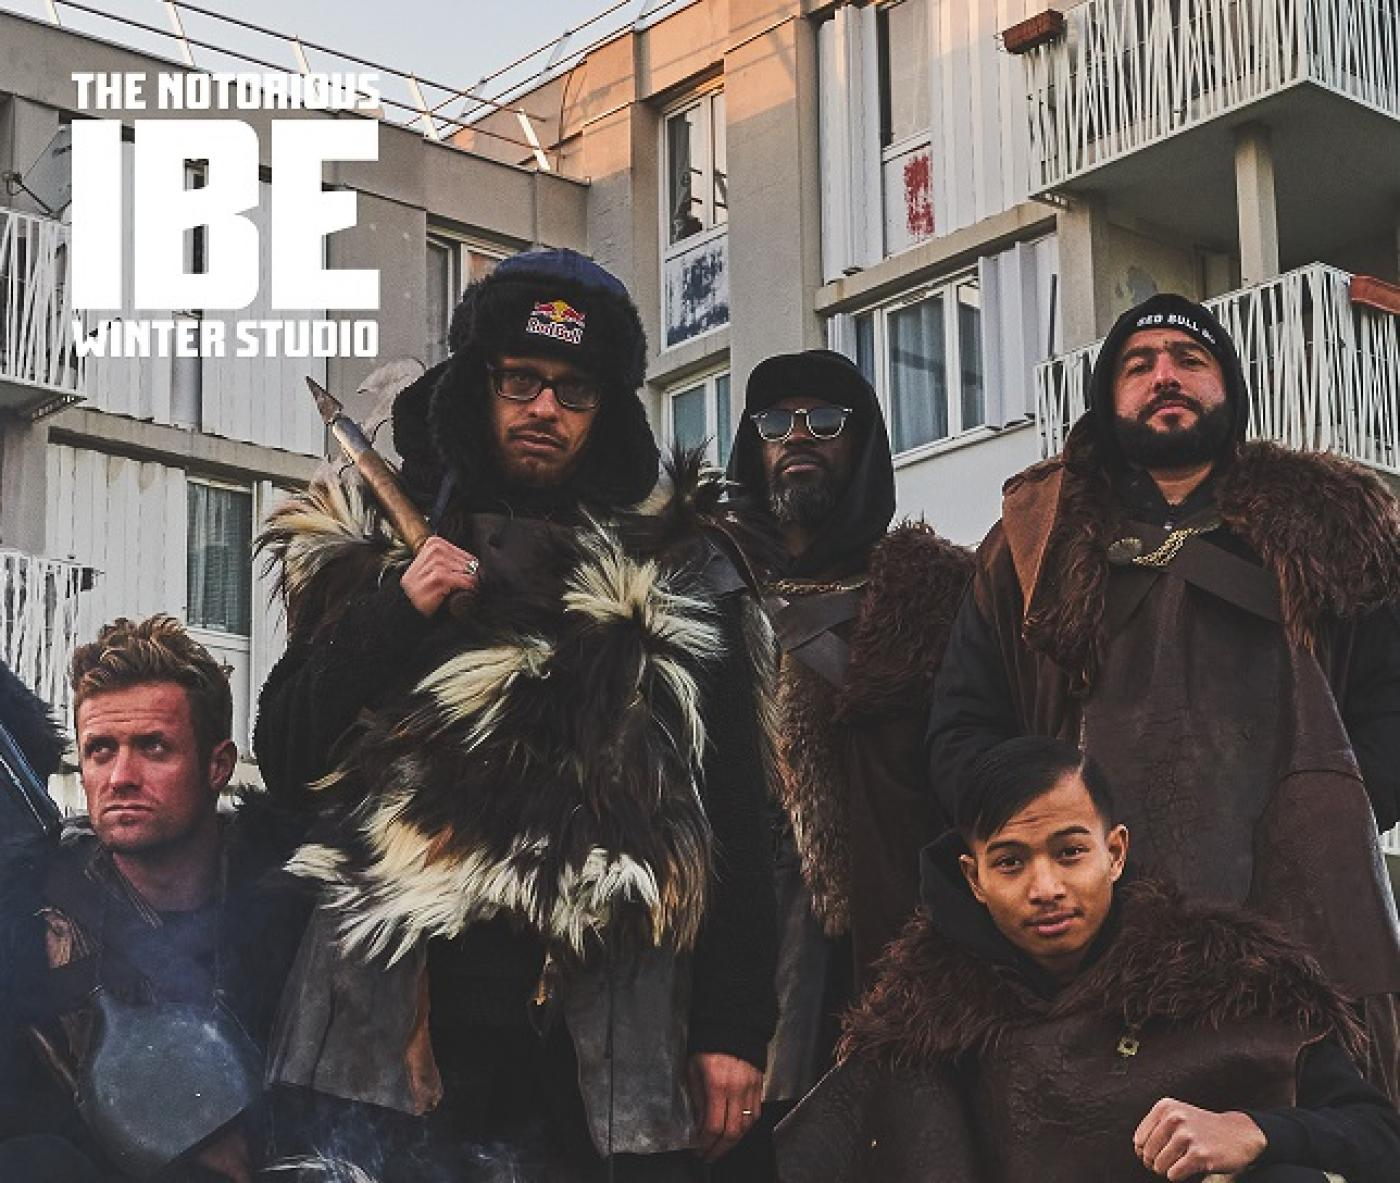 IBE Winter Studio - The Notorious IBE